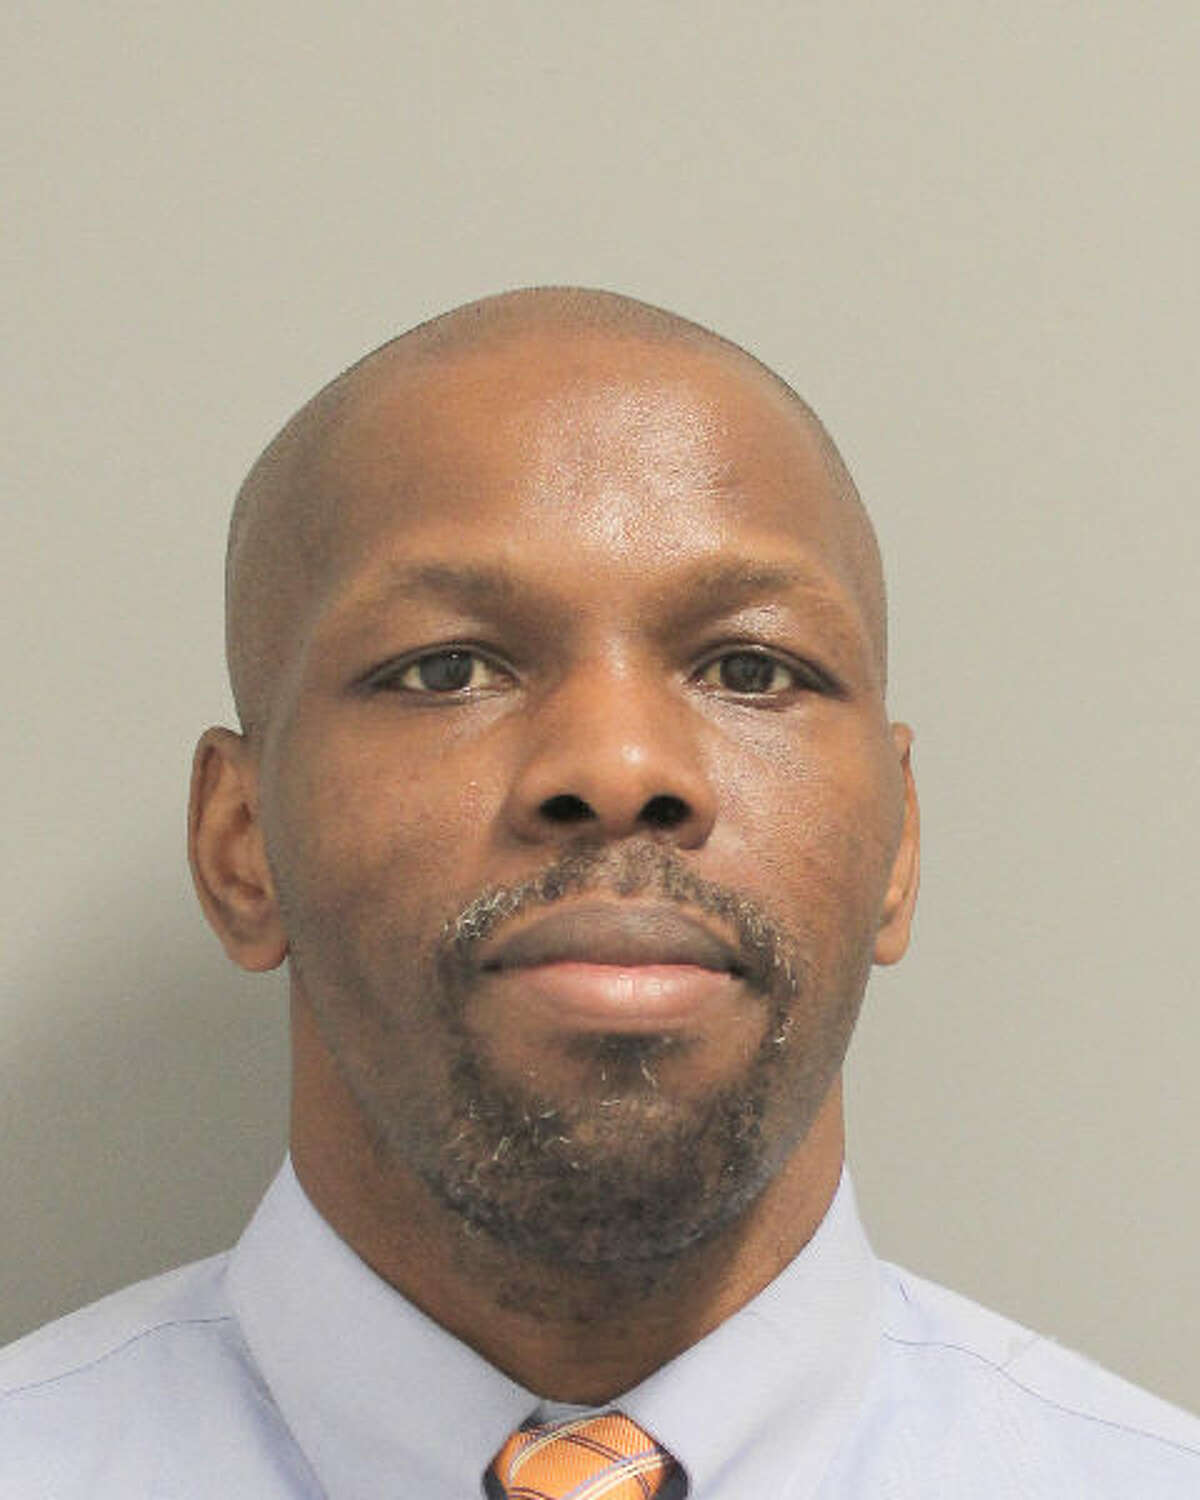 Michael Peck, former associate principal at Bridgeland High School, was charged with felony theft.